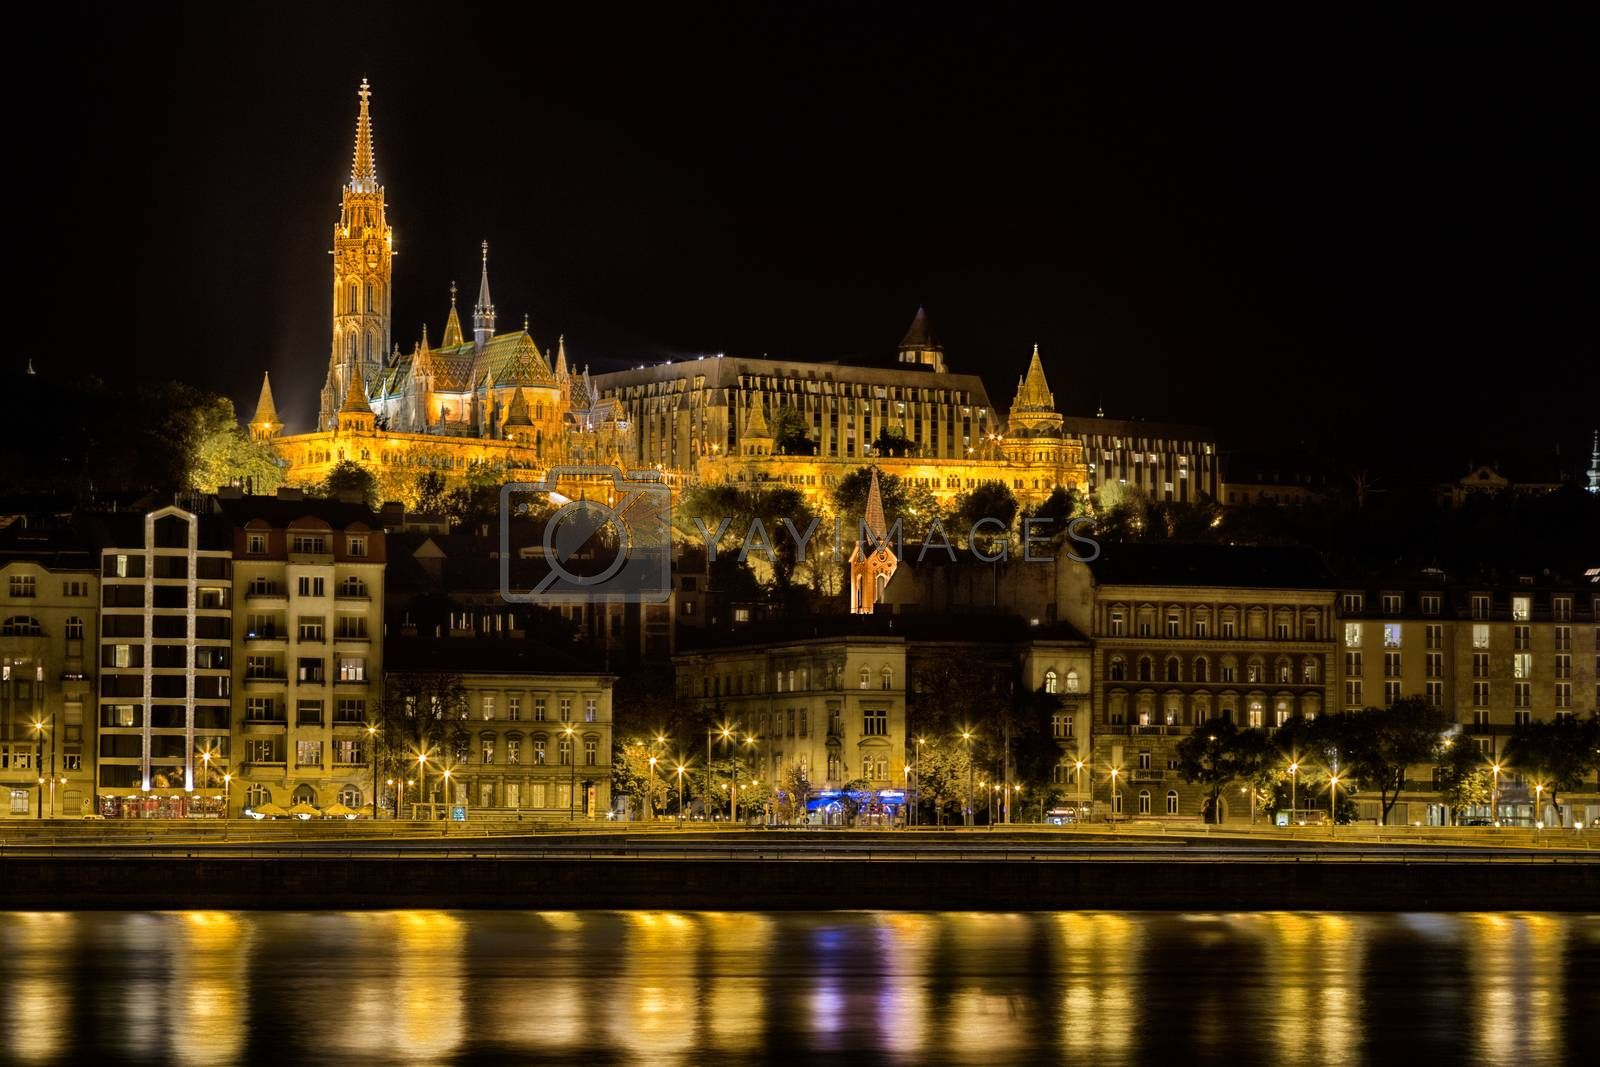 Danube Night View in Budapest by paocasa